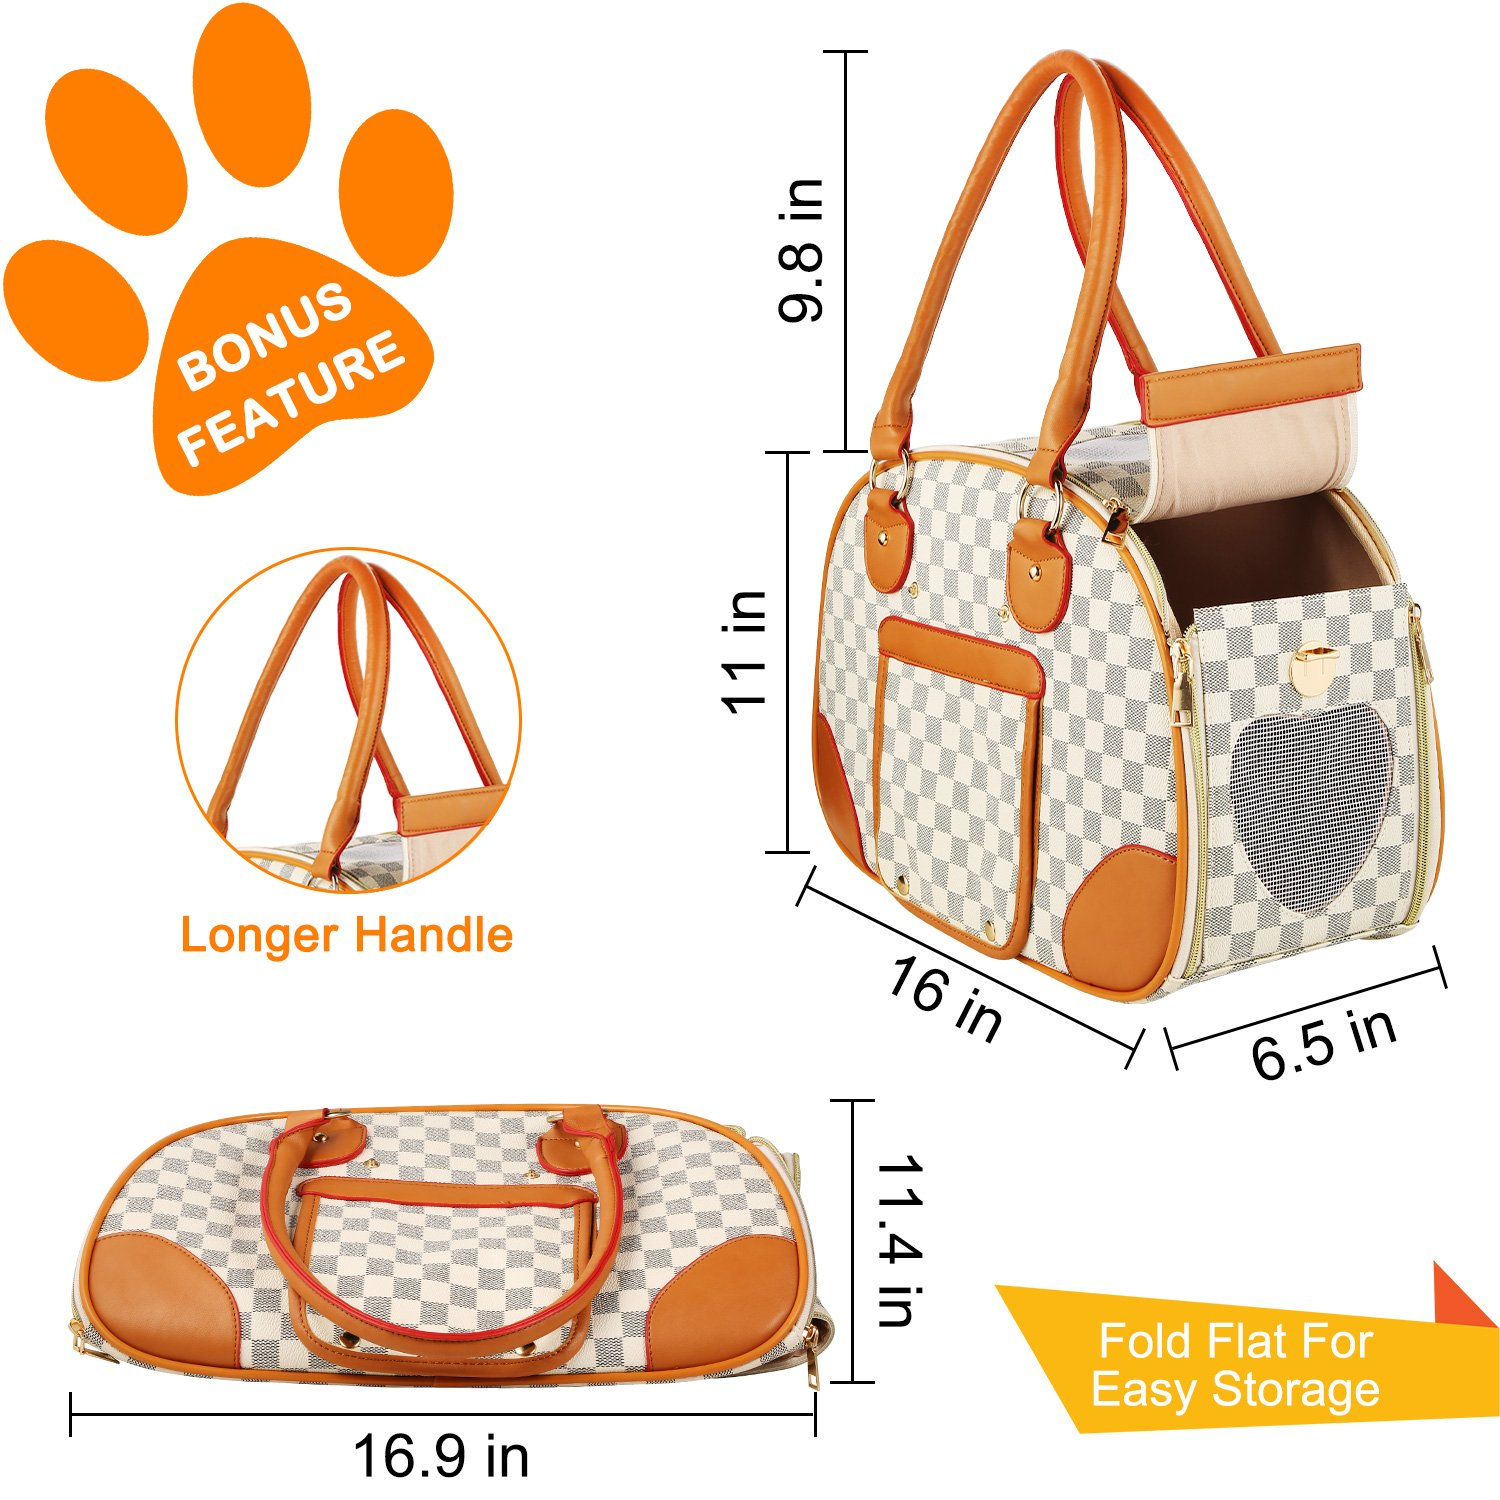 wot i Soft Sided Pet Carrier, Cat Carrier Dog Carrier Airline Approved Pet Carrier Suitable for Small Dogs and Cats, Medium Cats and Dogs, Puppy, Kittens, Small Animals, Luxury PU Leather Travel Bag by wot i (Image #3)